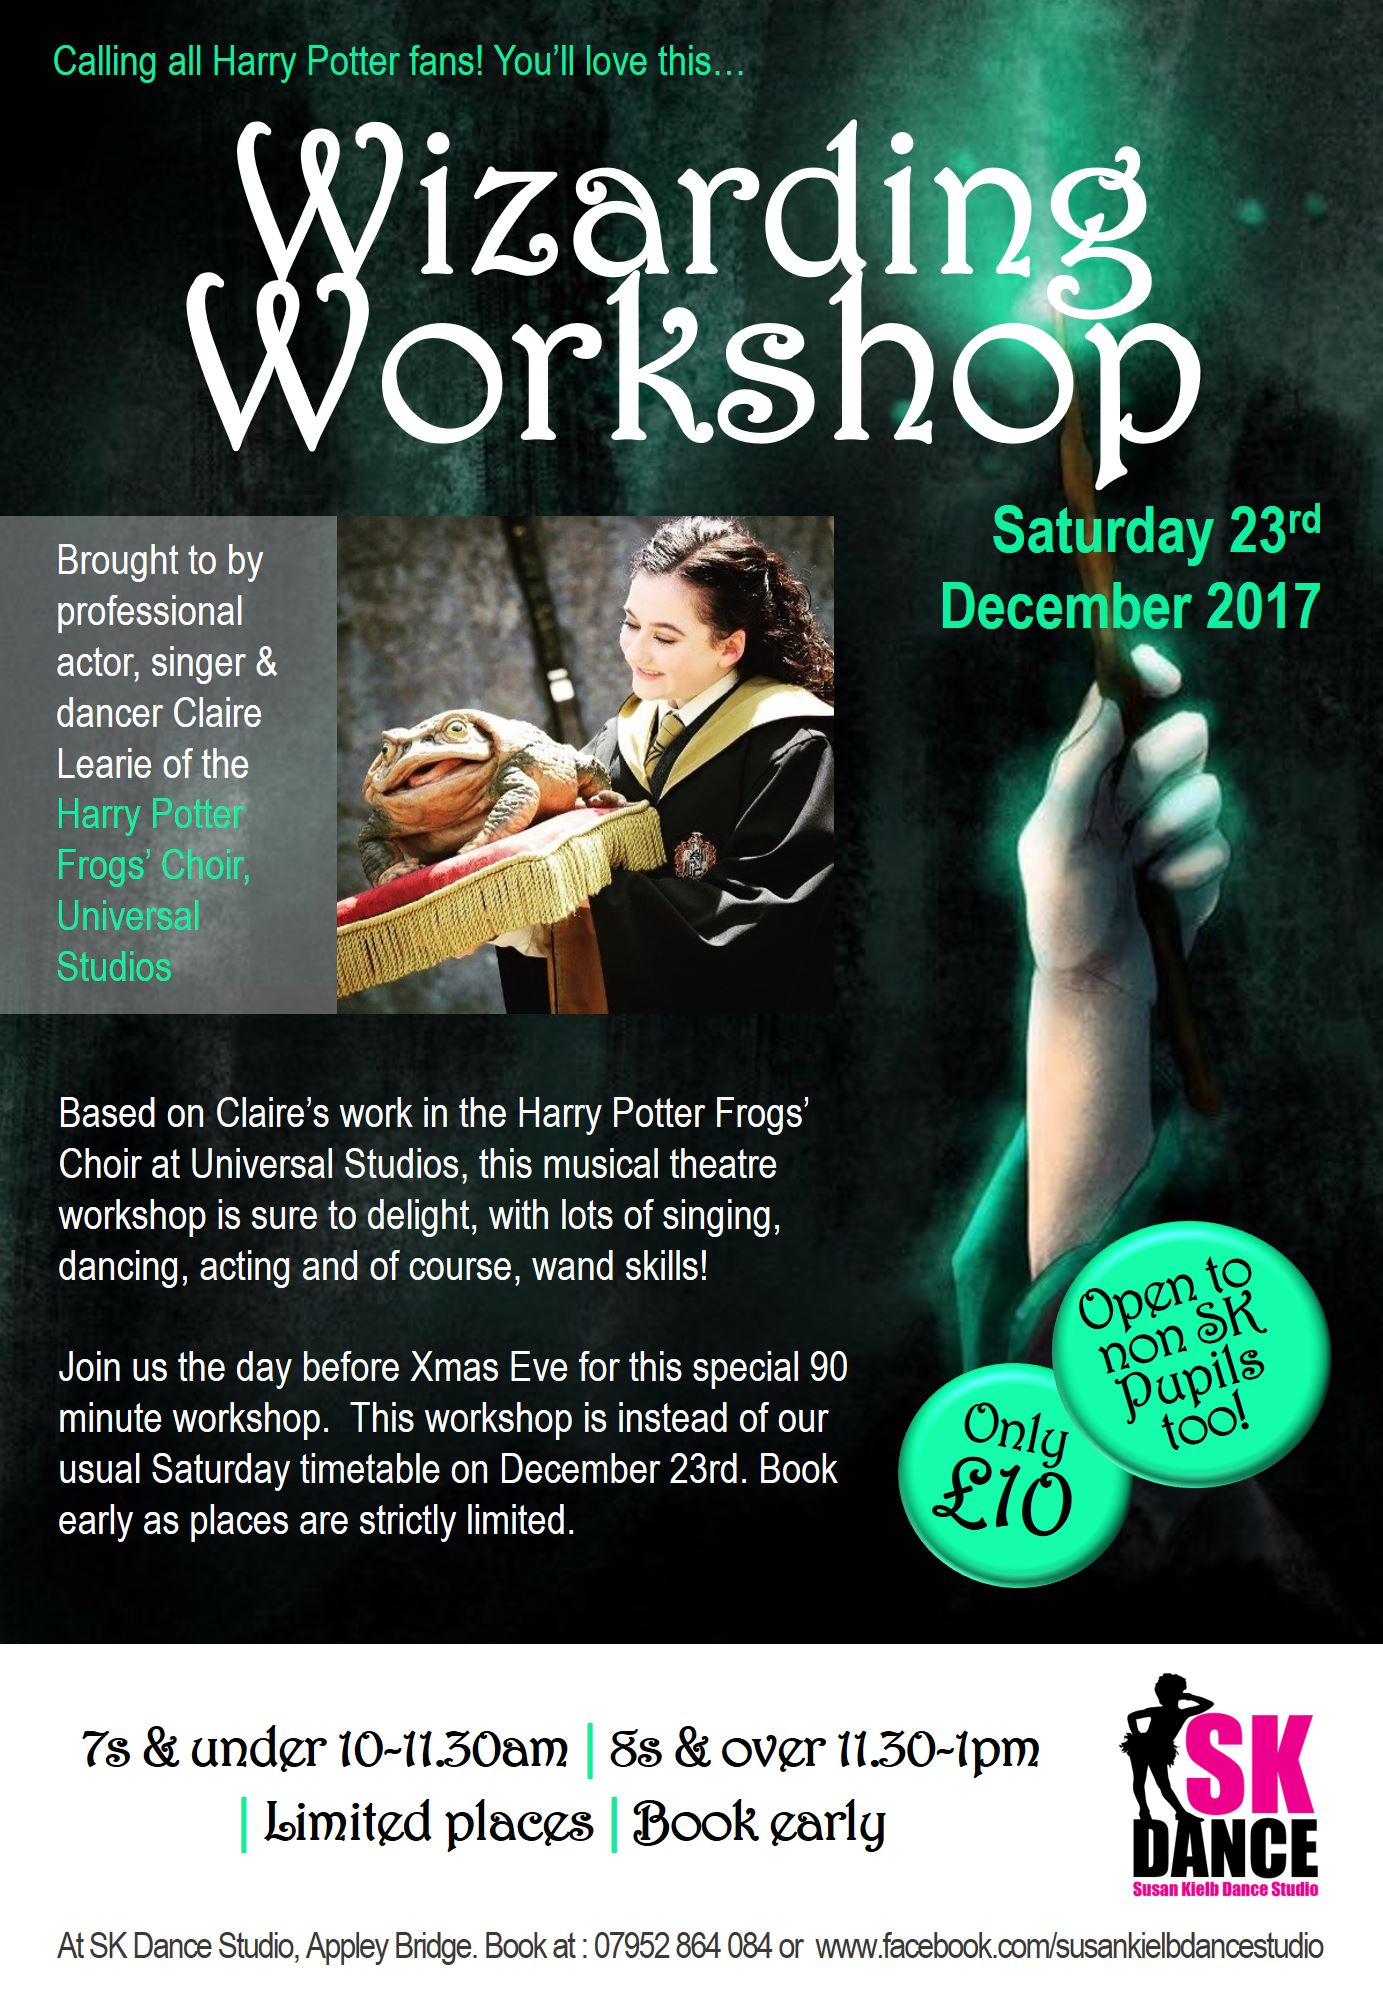 SK Dance Studio Wigan: Wizarding Workshop with professional actor, singer & dancer Claire Learie of the Harry Potter Frogs' Choir, Universal Studios